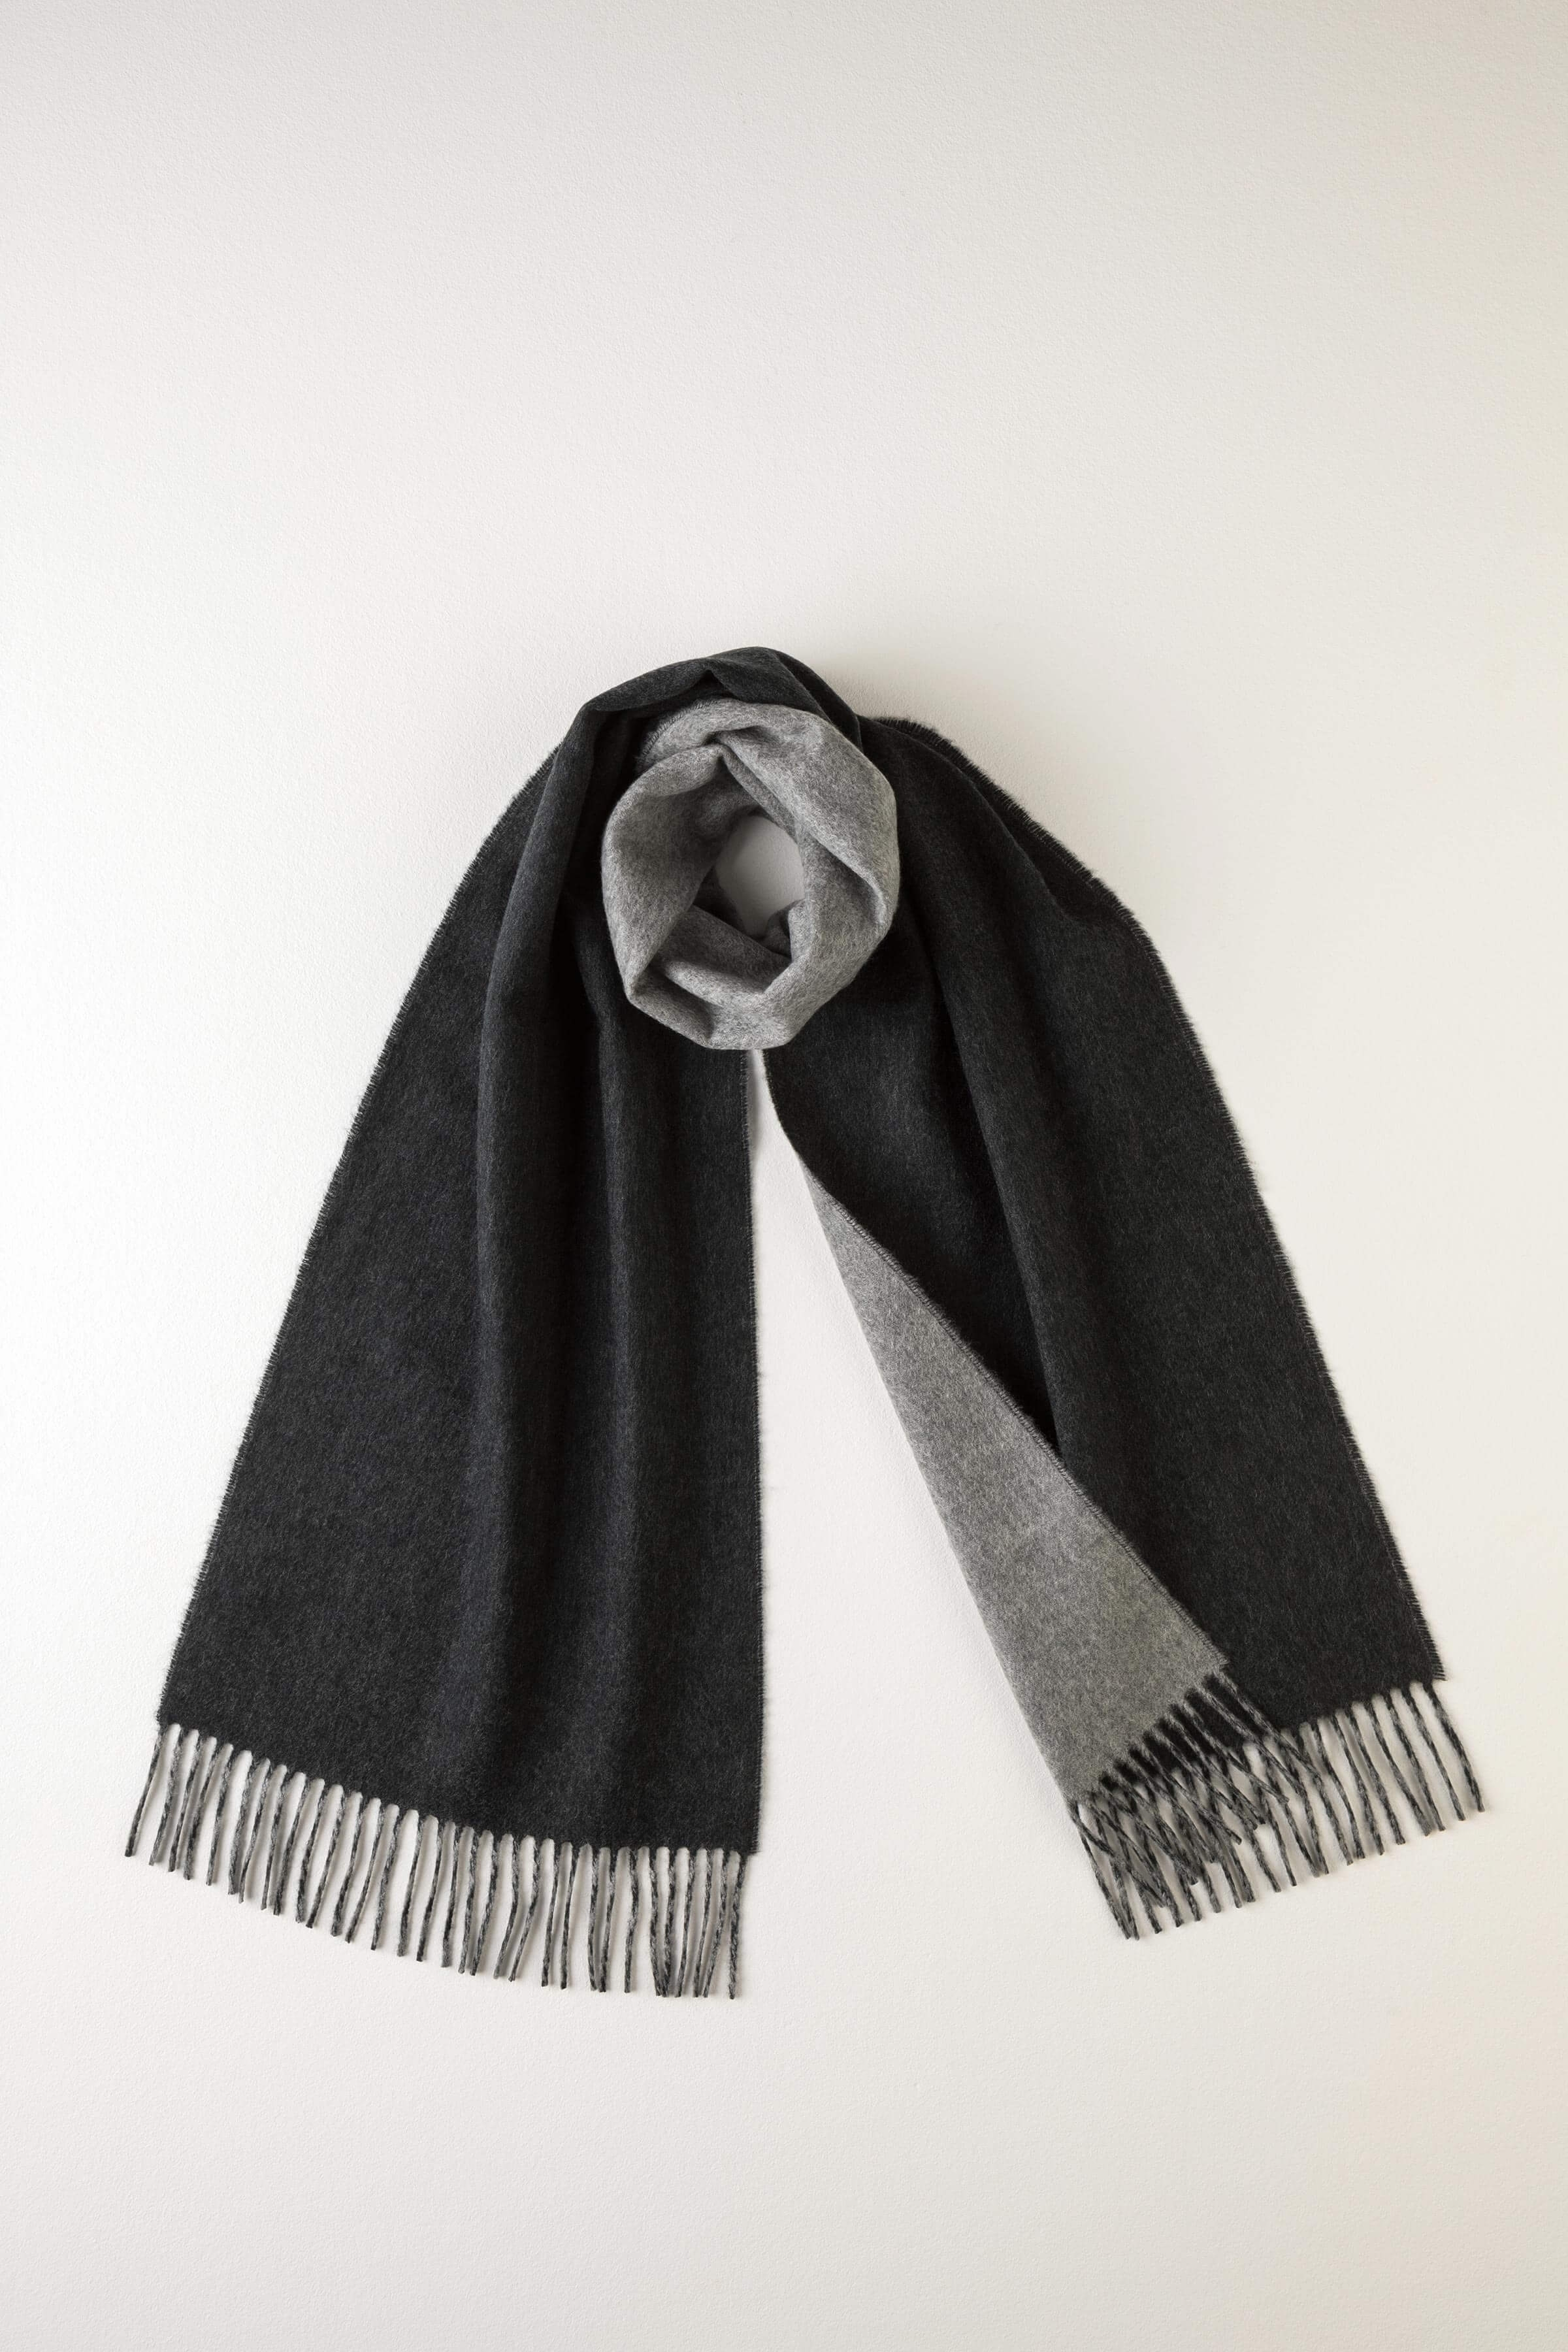 JOHNSTONS OF ELGIN CHARCOAL & GREY CONTRAST REVERSIBLE CASHMERE SCARF